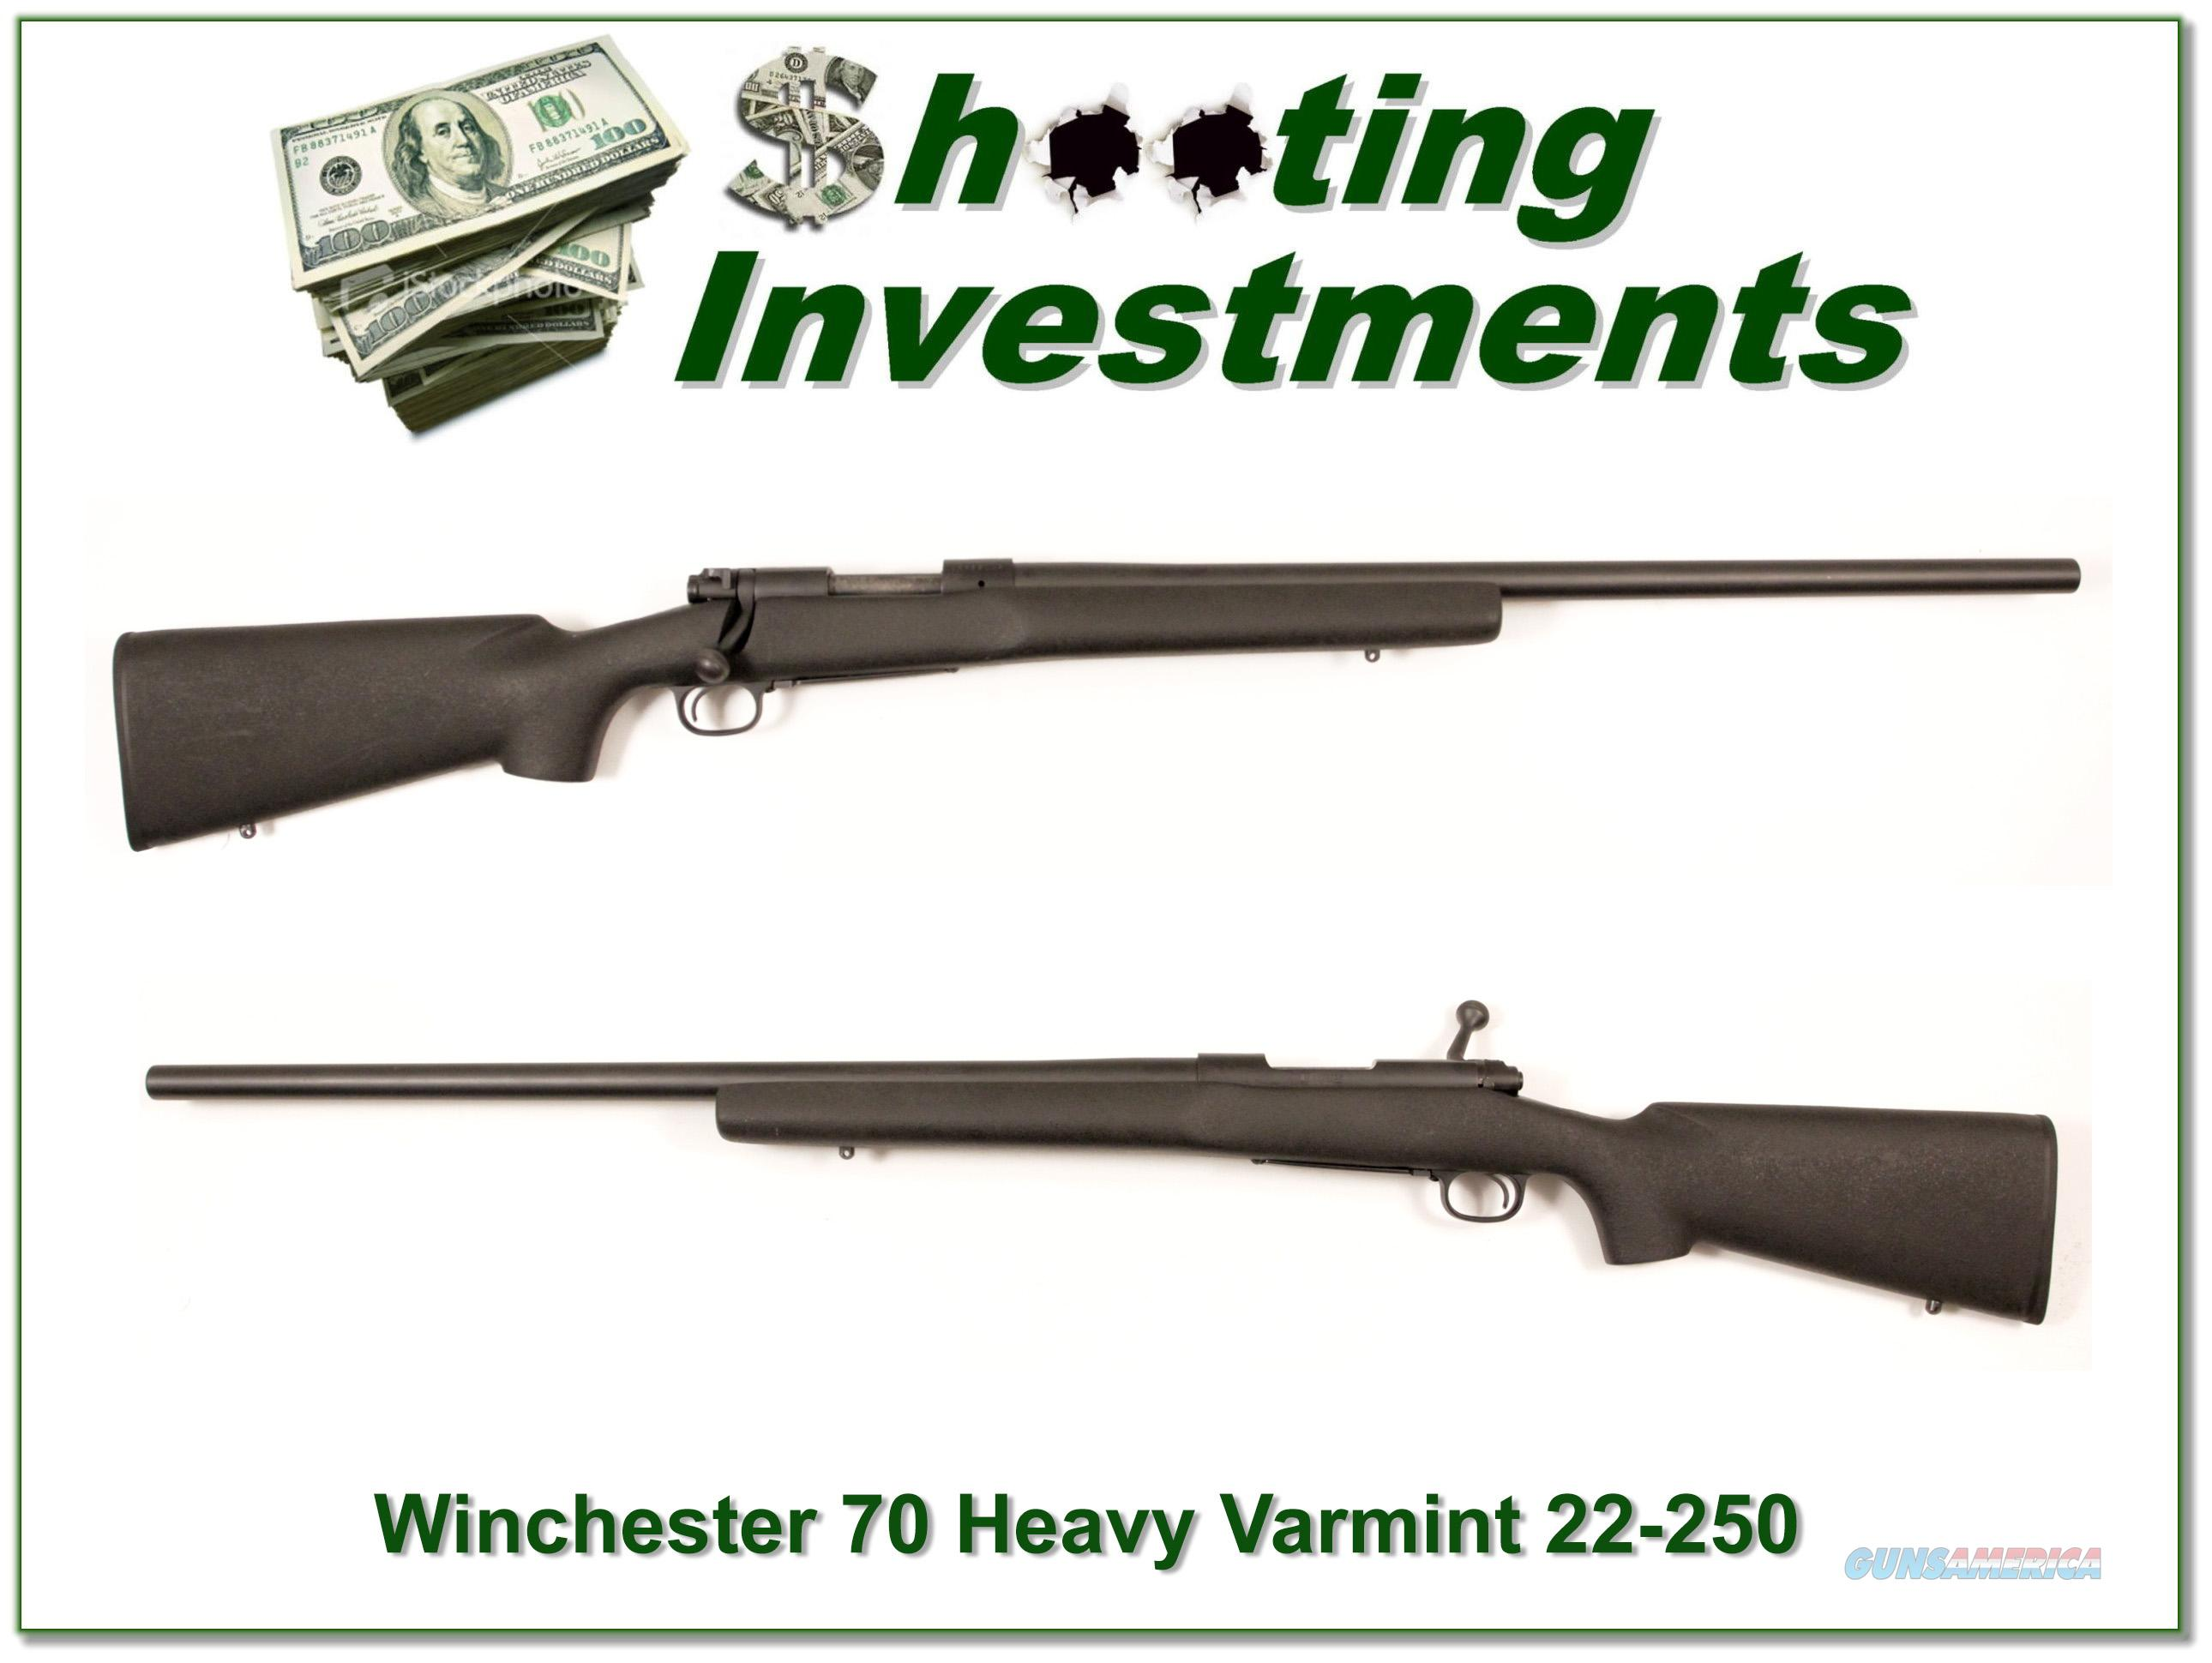 Winchester Model 70 Heavy Varmint 22-250  Guns > Rifles > Winchester Rifles - Modern Bolt/Auto/Single > Other Bolt Action